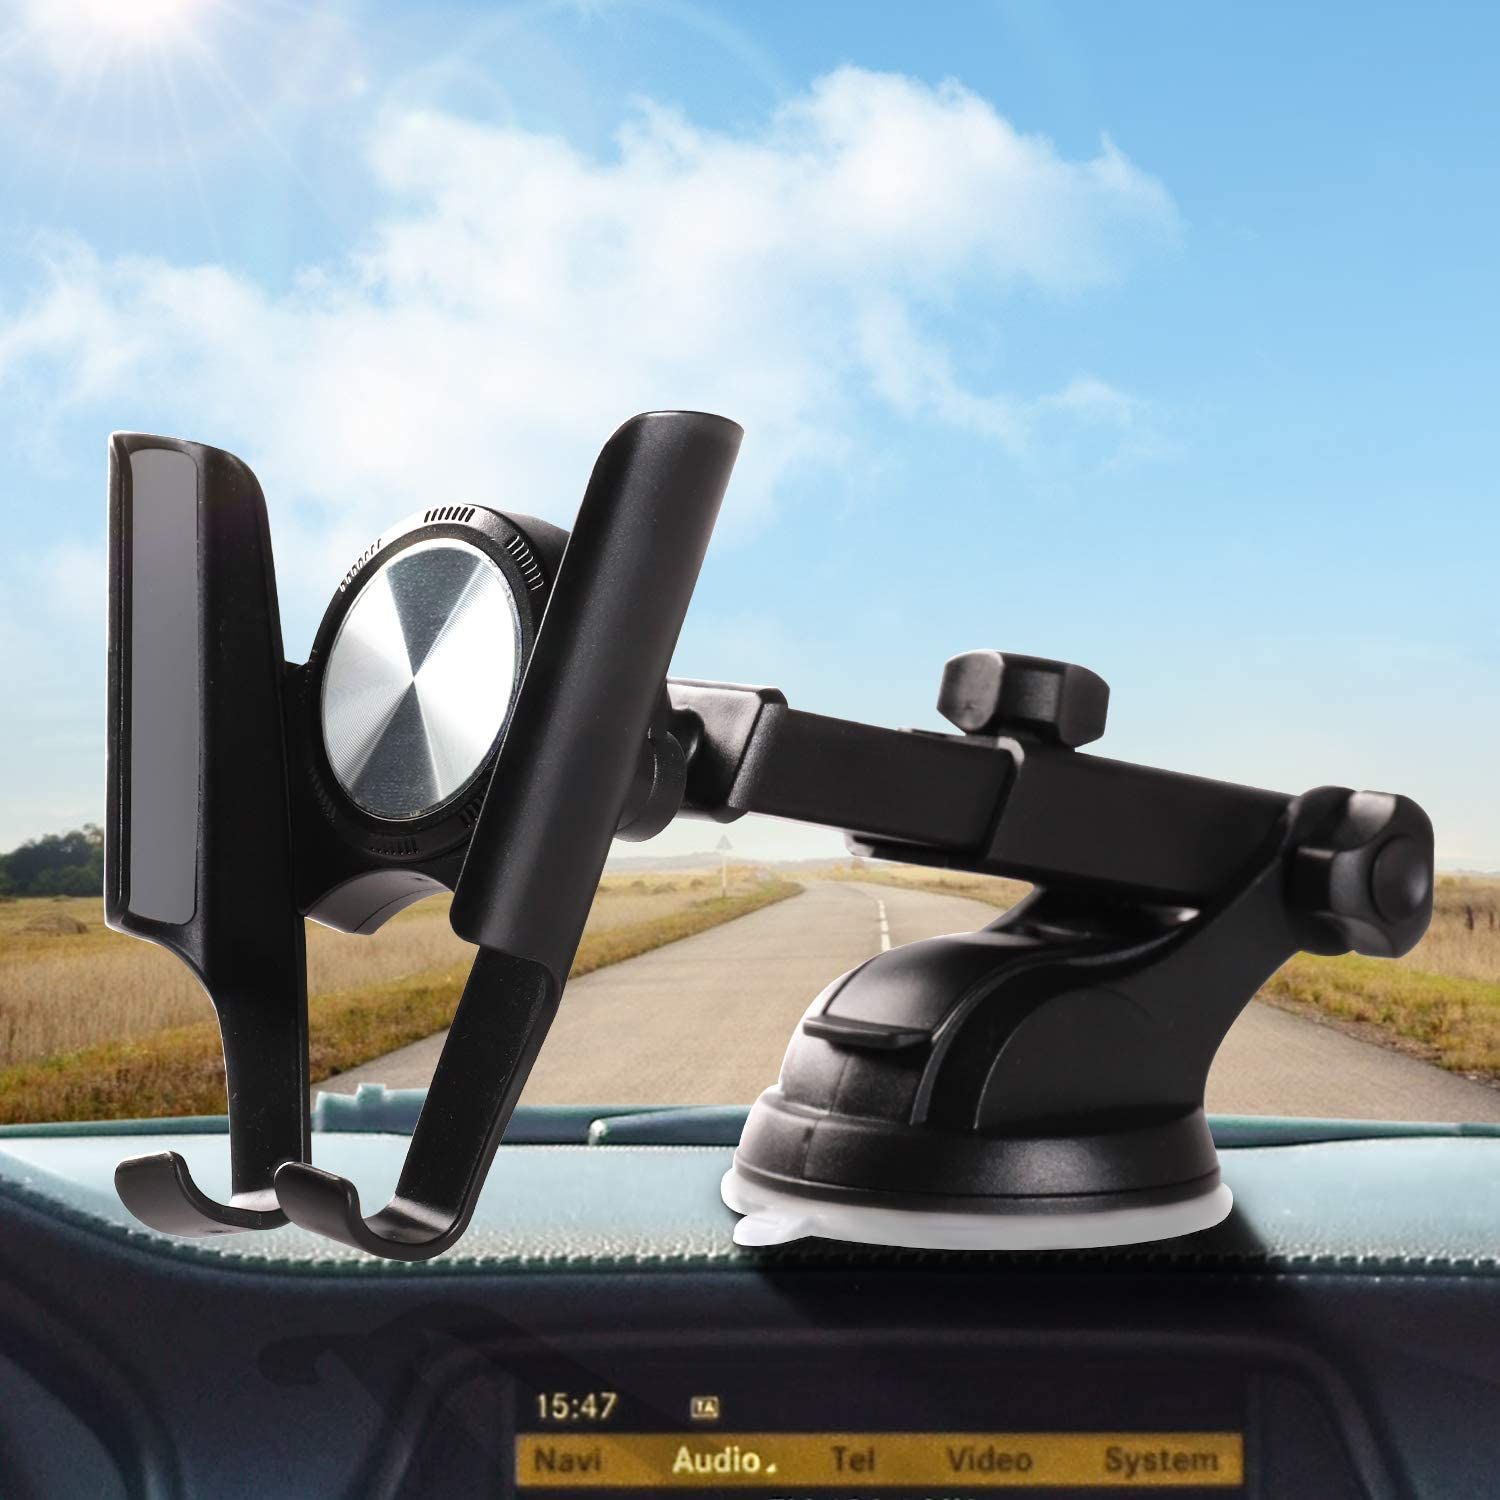 Suitable for iPhone Galaxy Phone Car Holder Vents Retractable Long arm Suction Cup Holder for Instrument Panel Windshield Universal Car Phone Holder LG Series car Phone Holder Universal Type